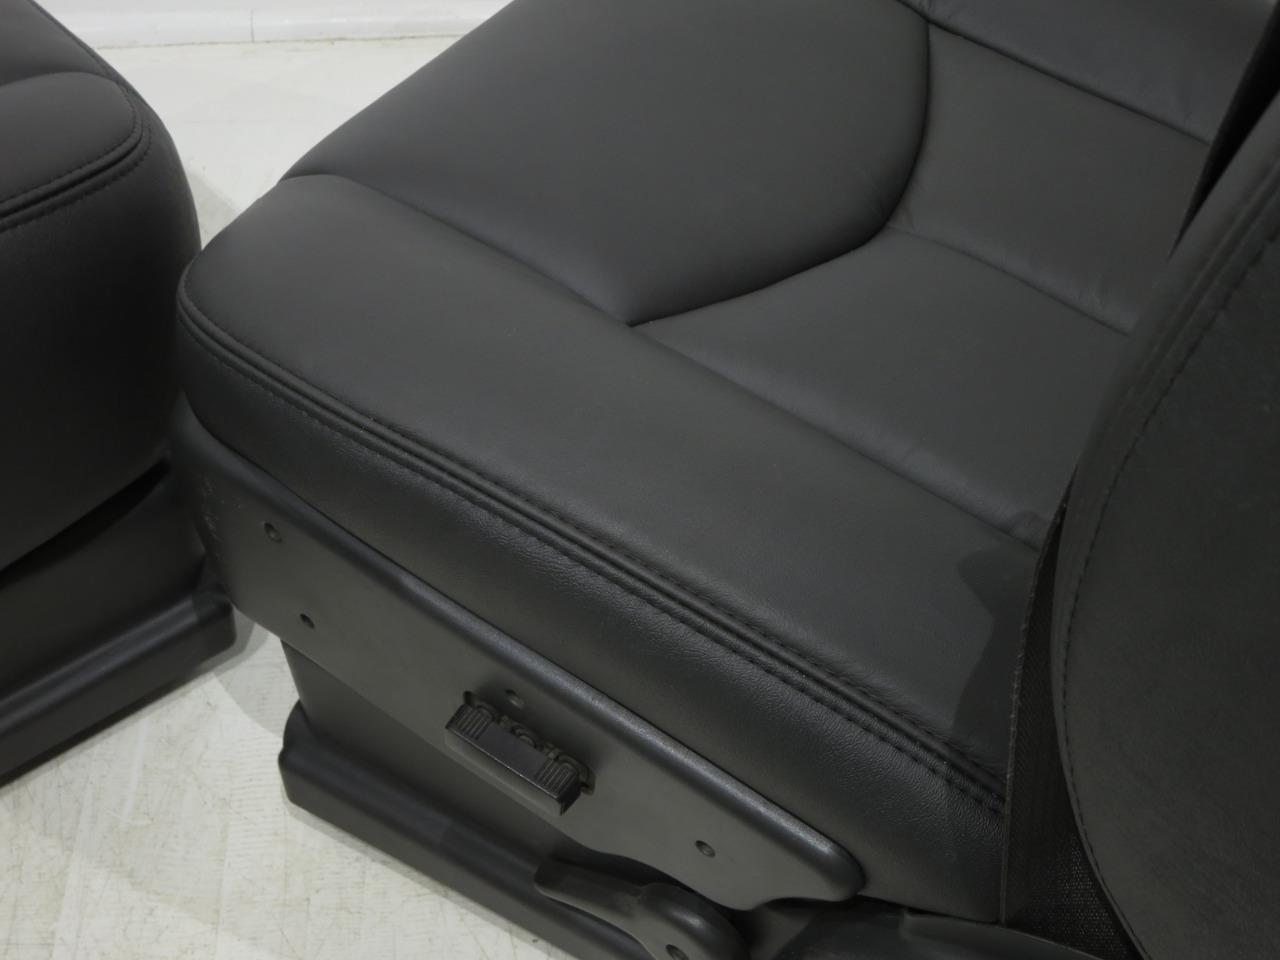 Chevy Silverado Replacement Seats >> Replacement Chevy Silverado Ss New Leather Oem Seats 2003 2004 2005 2006 ' Gmc Sierra | Stock ...